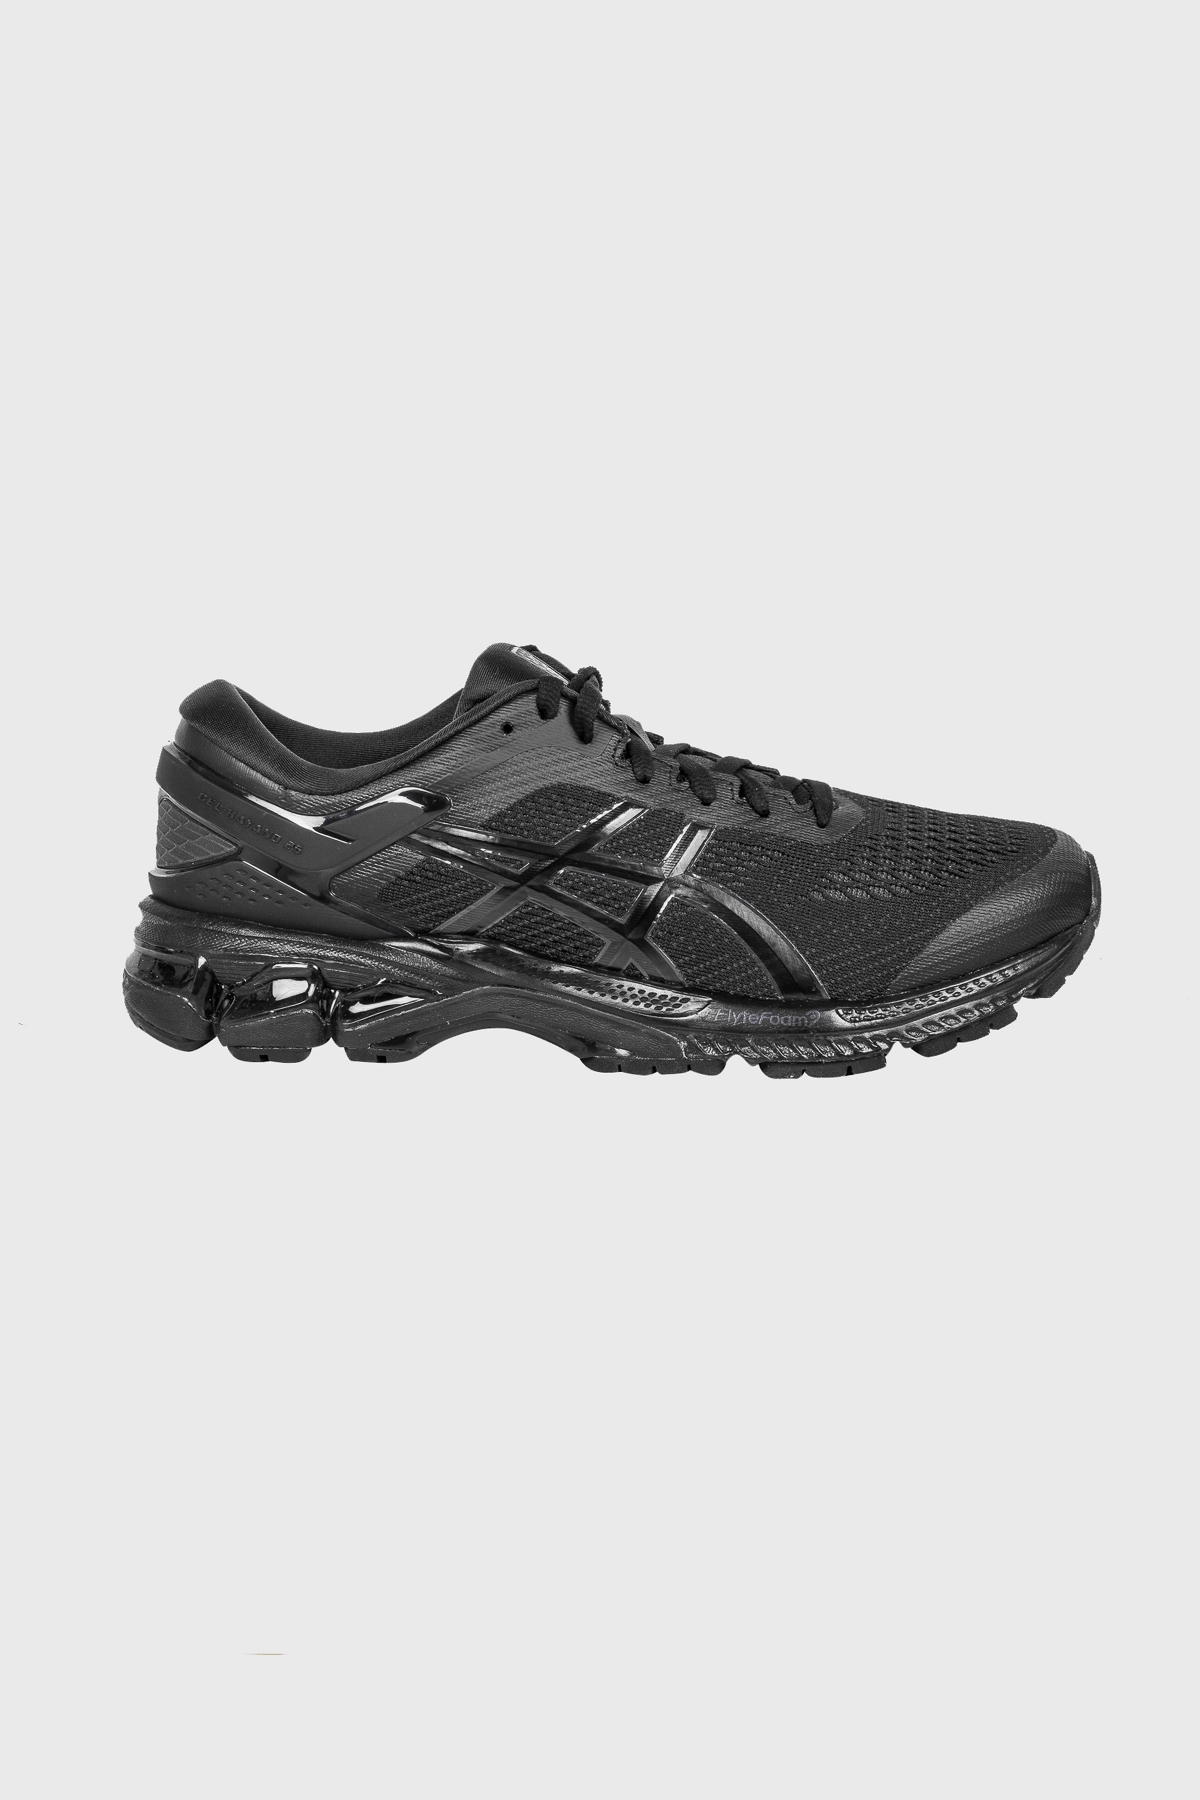 Asics - Gel Kayano 26 - black